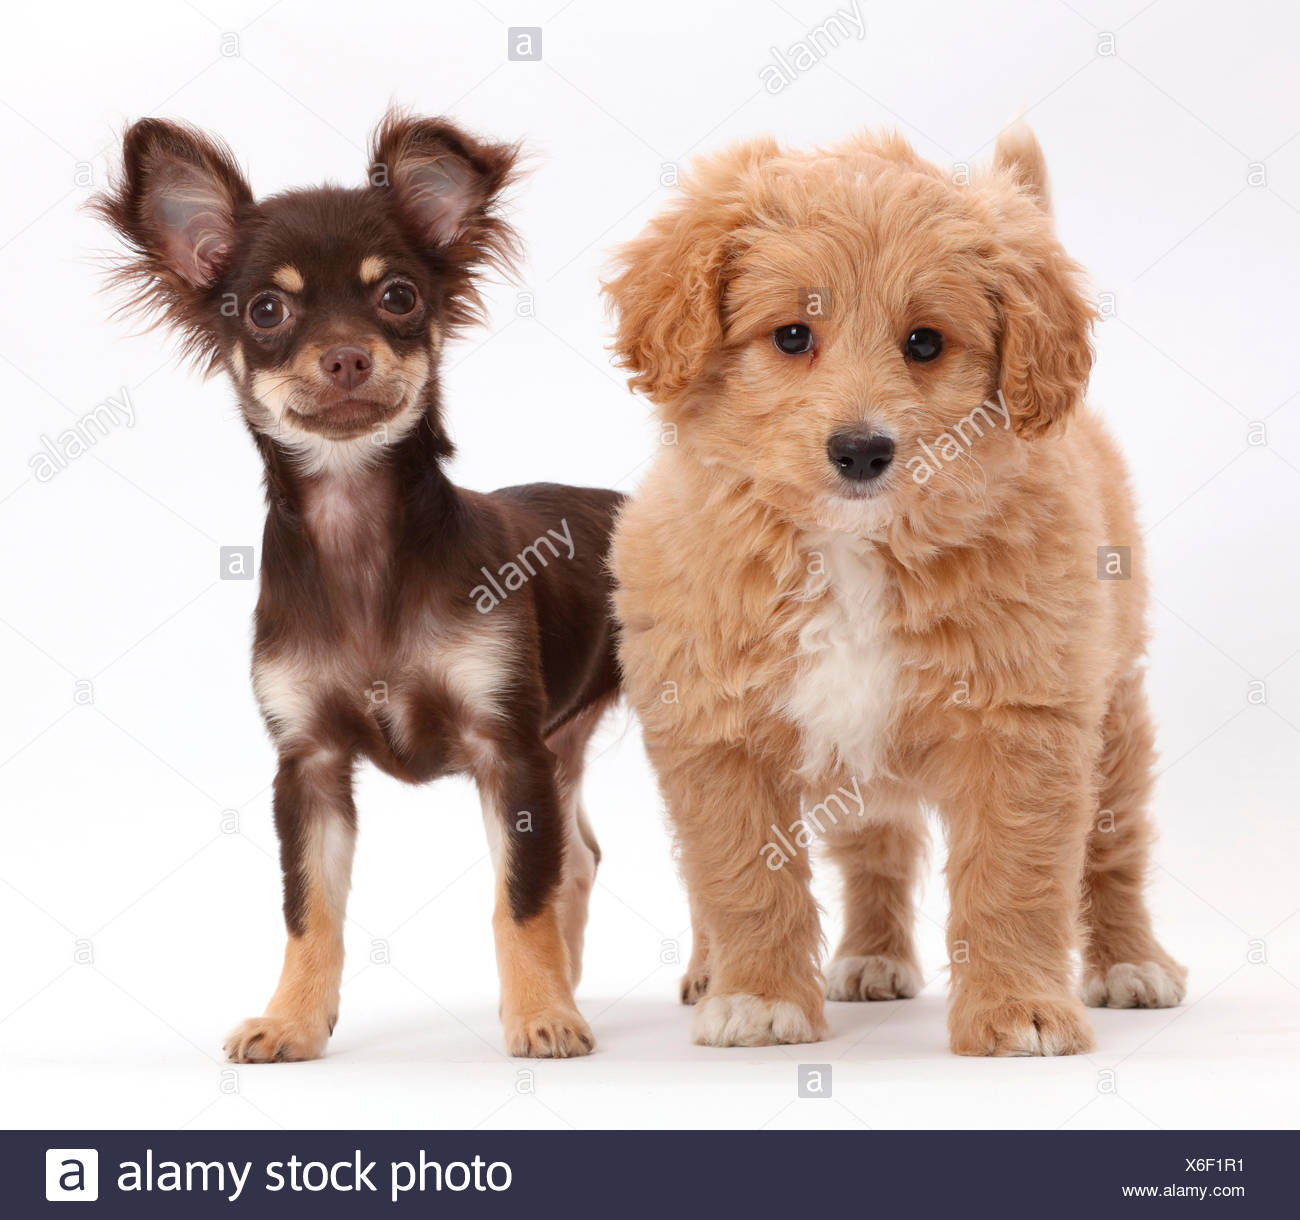 Chocolate And Tan Chihuahua With Cavapoo Puppy Stock Photo Alamy